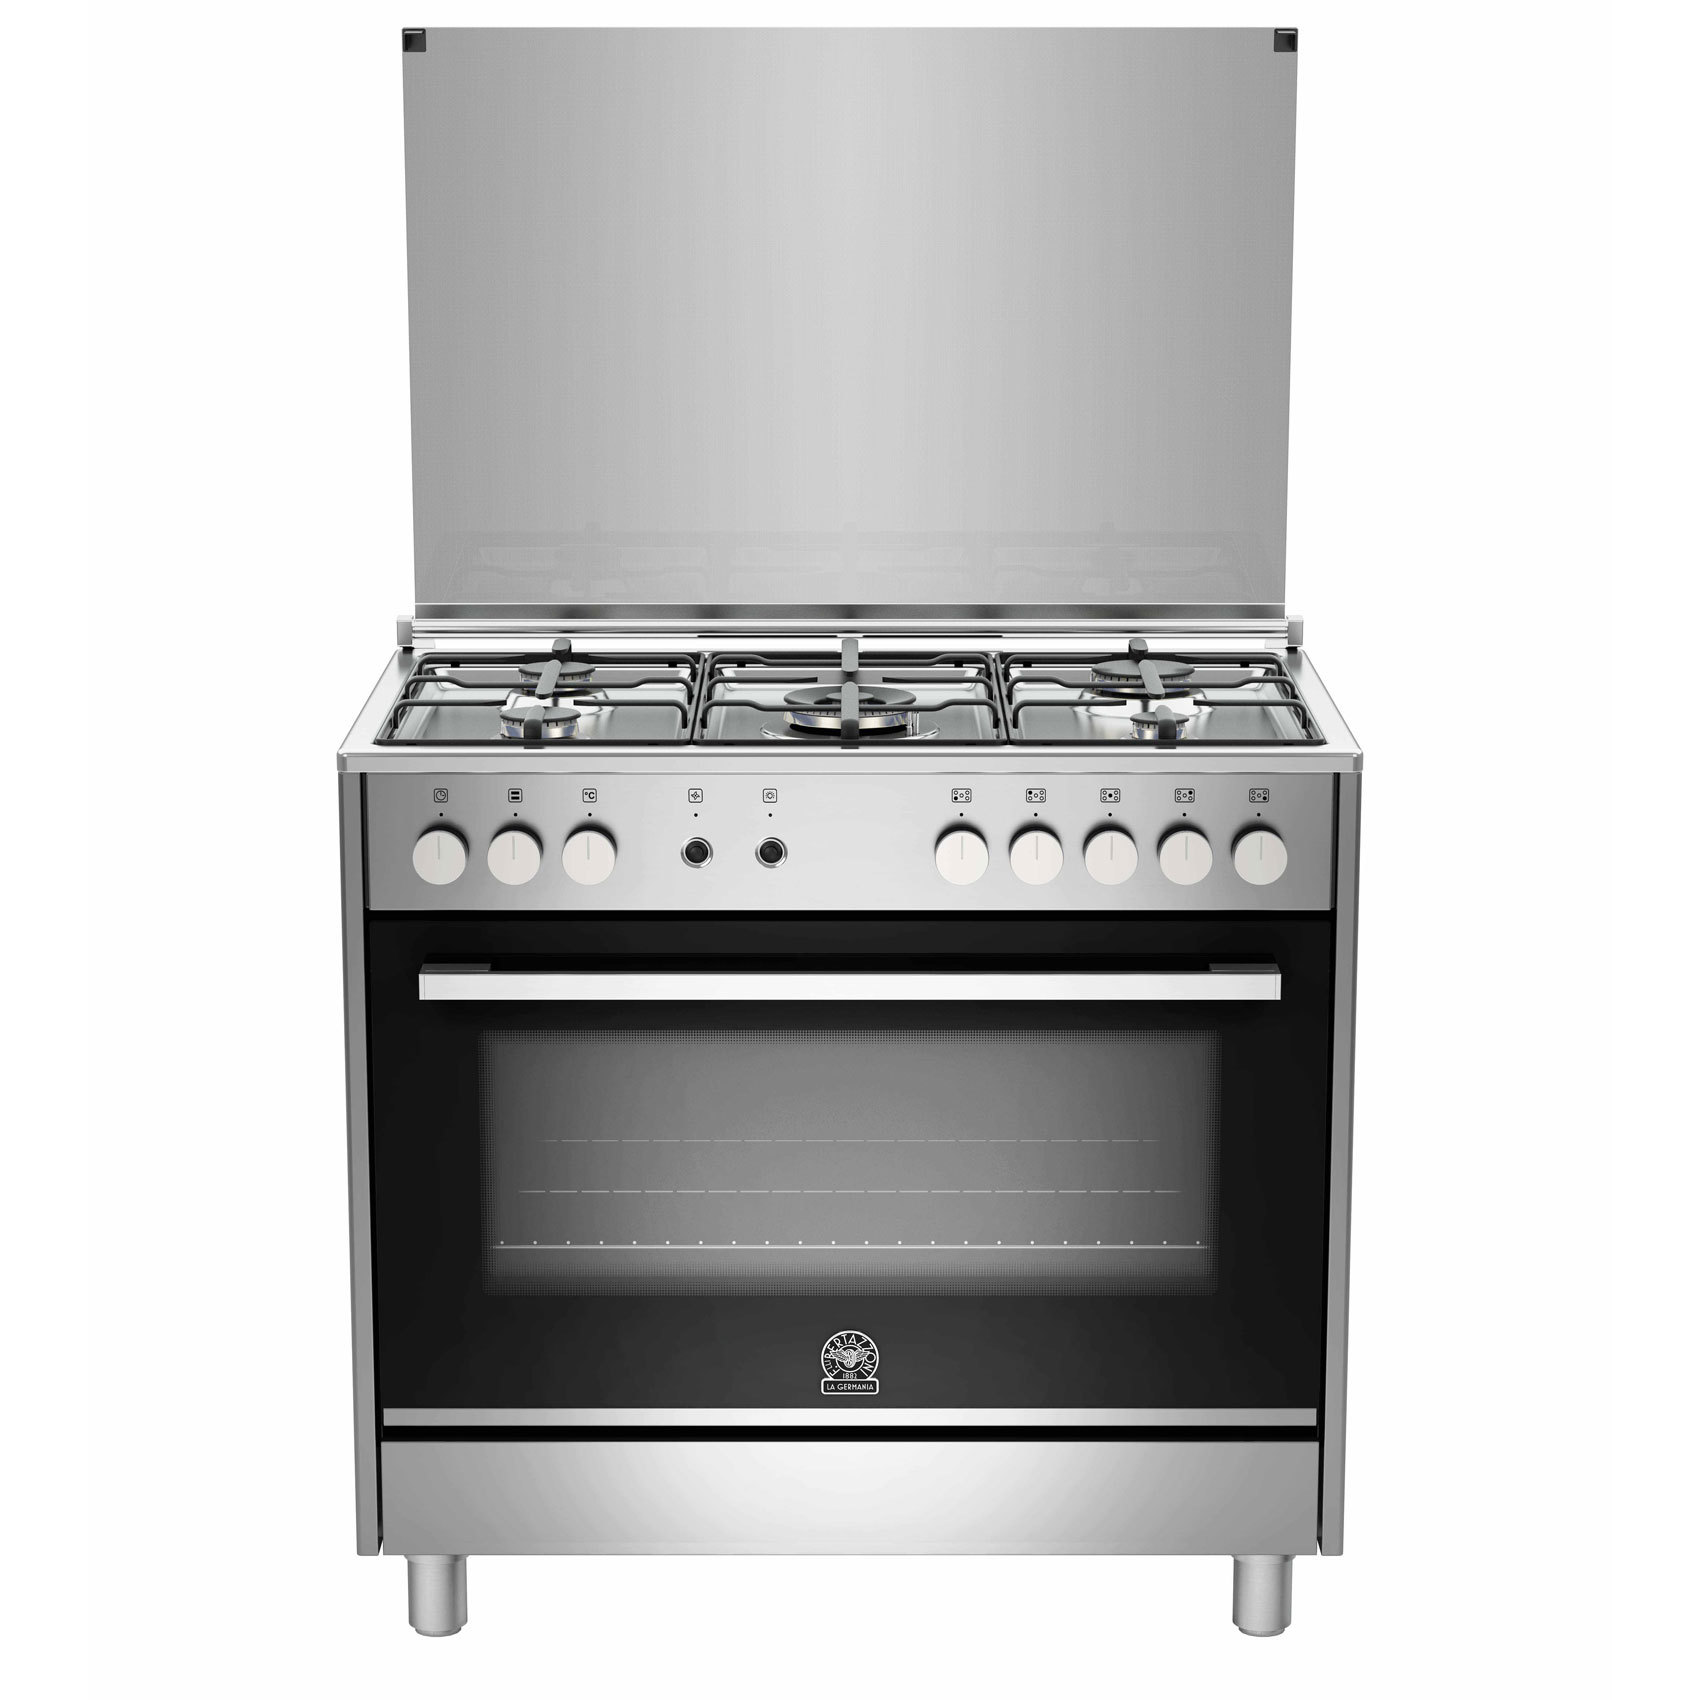 LA GERMANIA COOKER TUS95C31DX 90X60